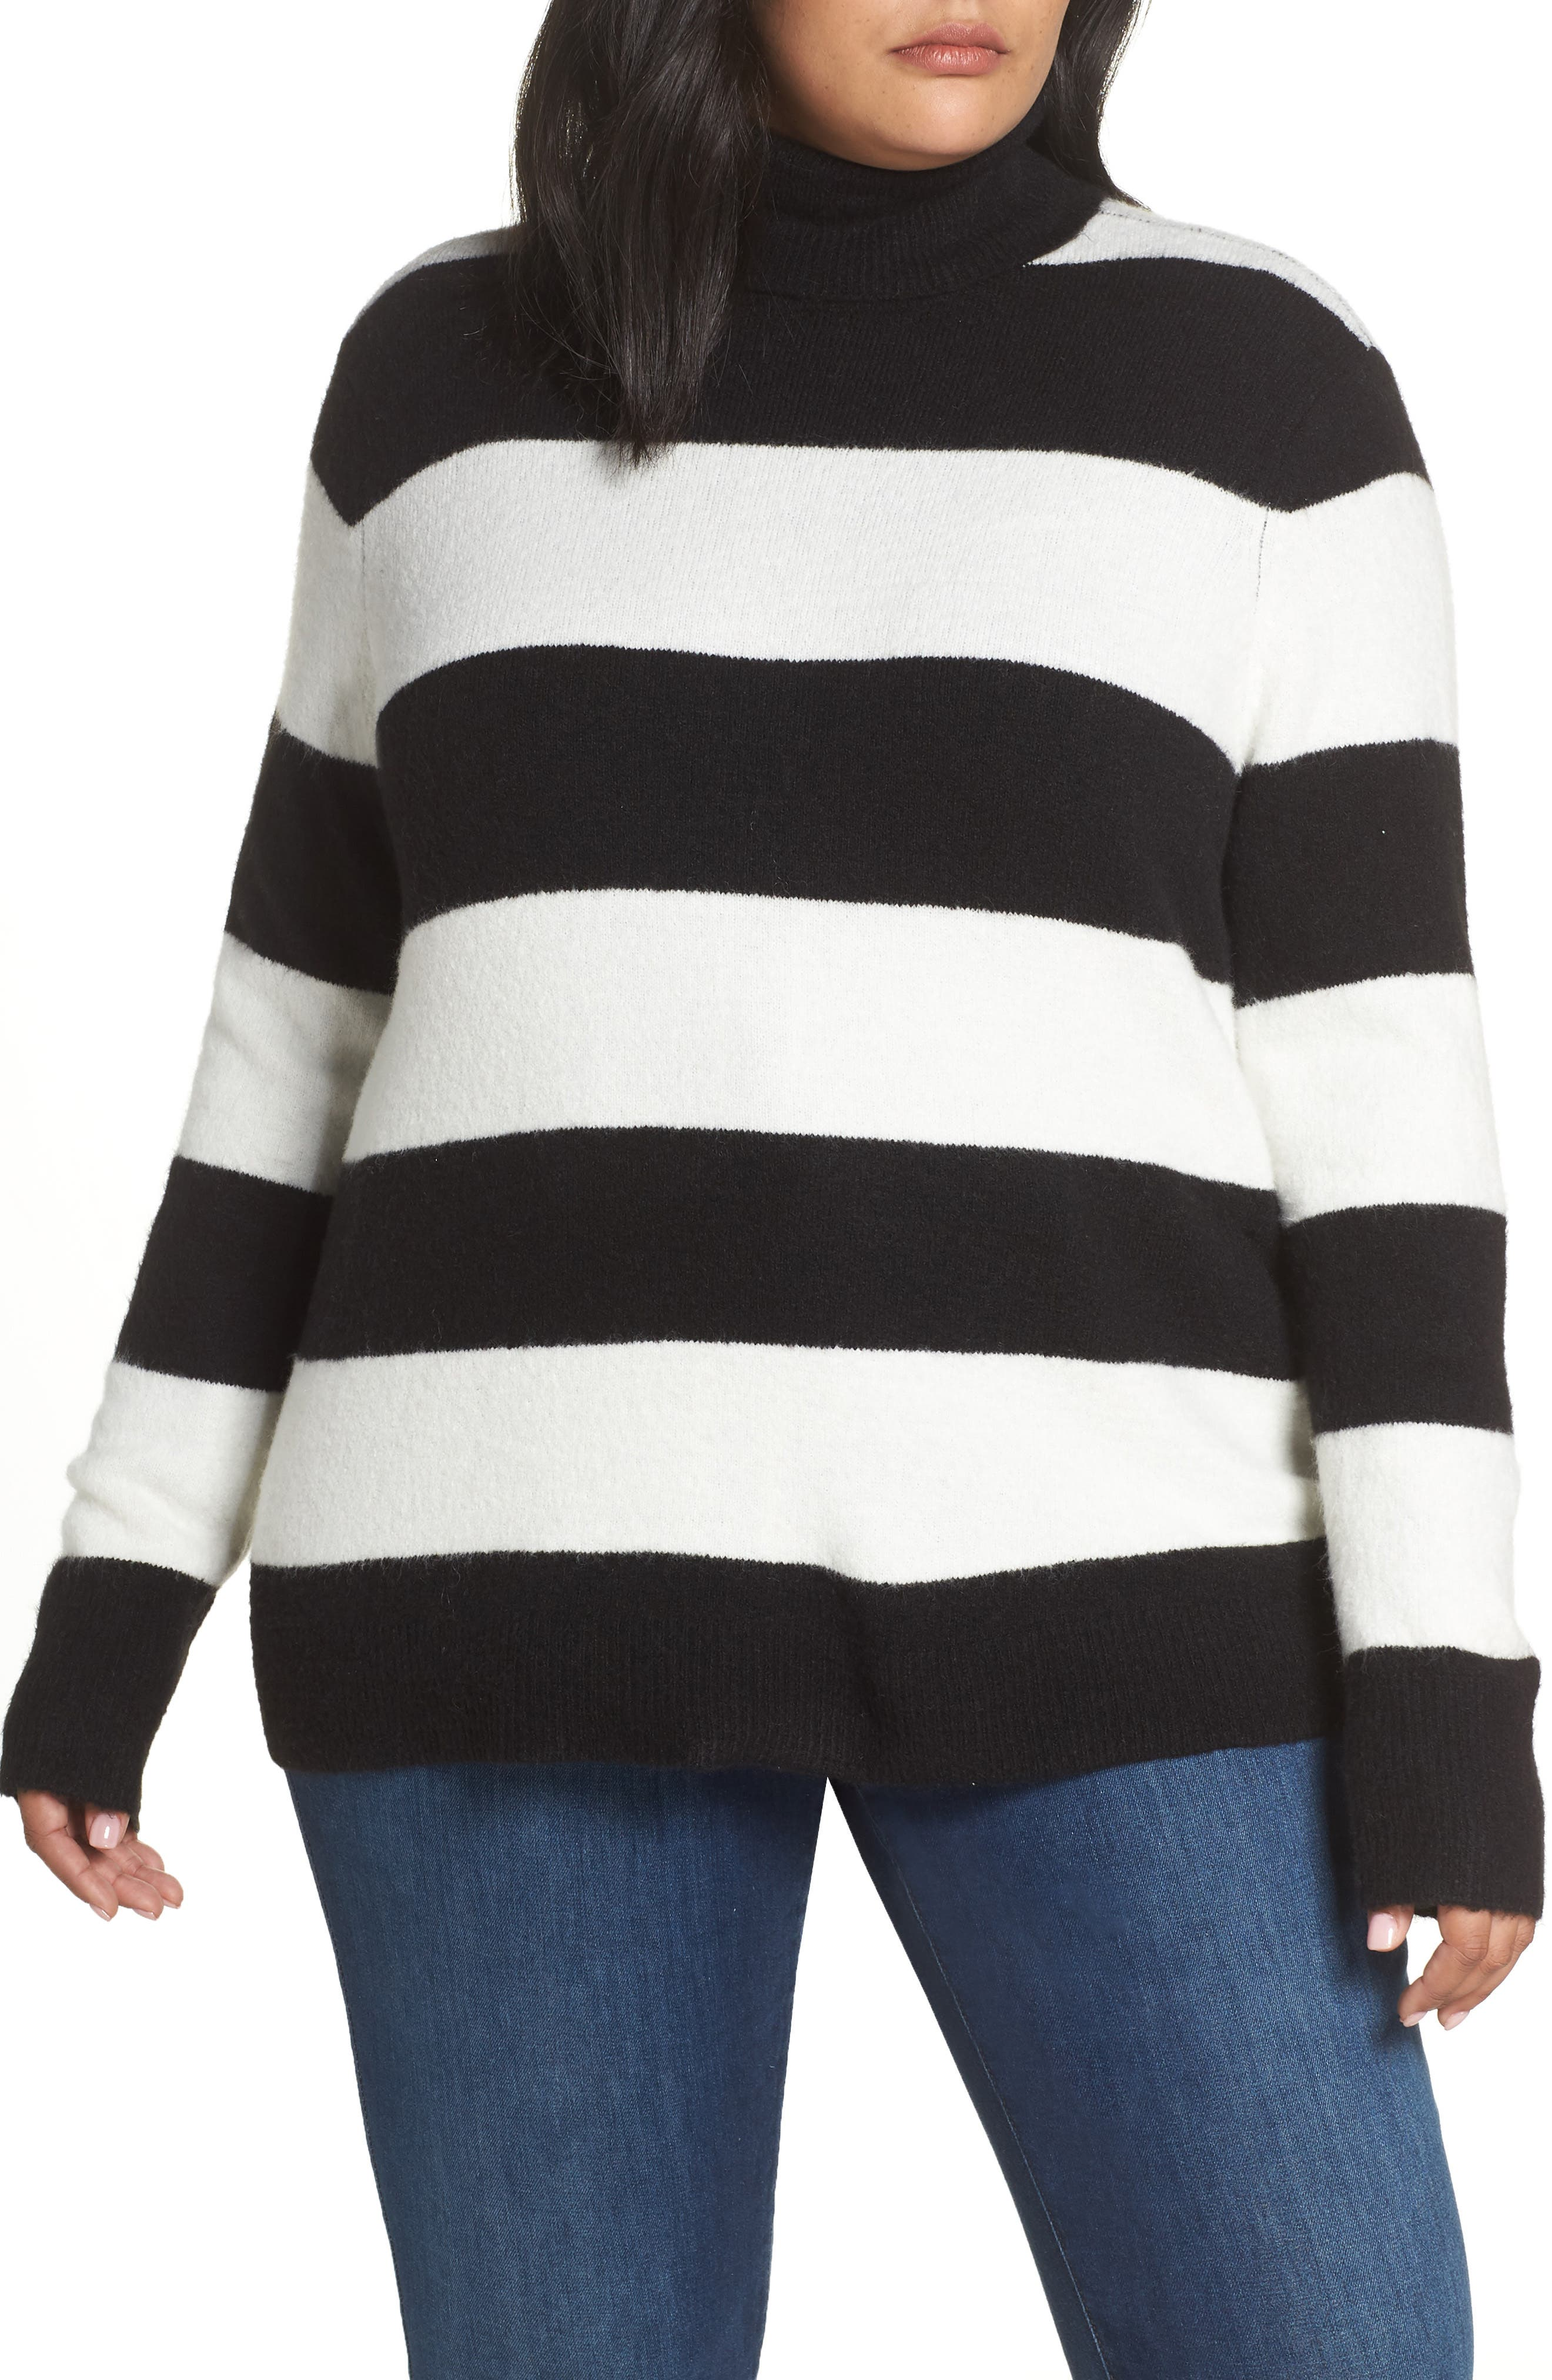 x Atlantic-Pacific Stripe Turtleneck Sweater,                         Main,                         color, BLACK- IVORY STRIPE